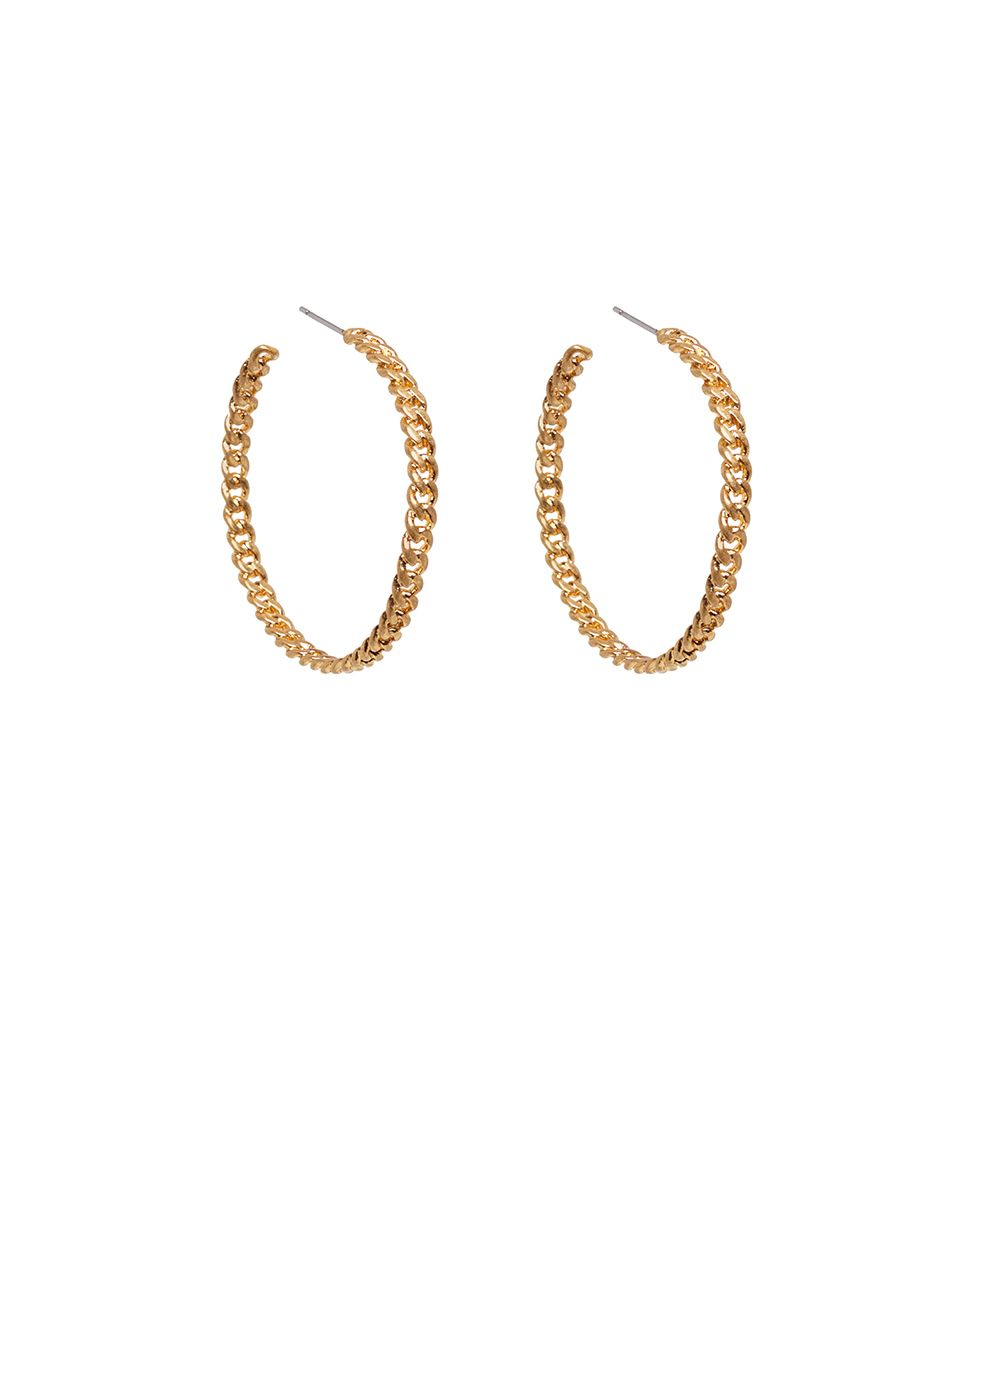 ANTO LARGE GOLD CHAIN EARRINGS